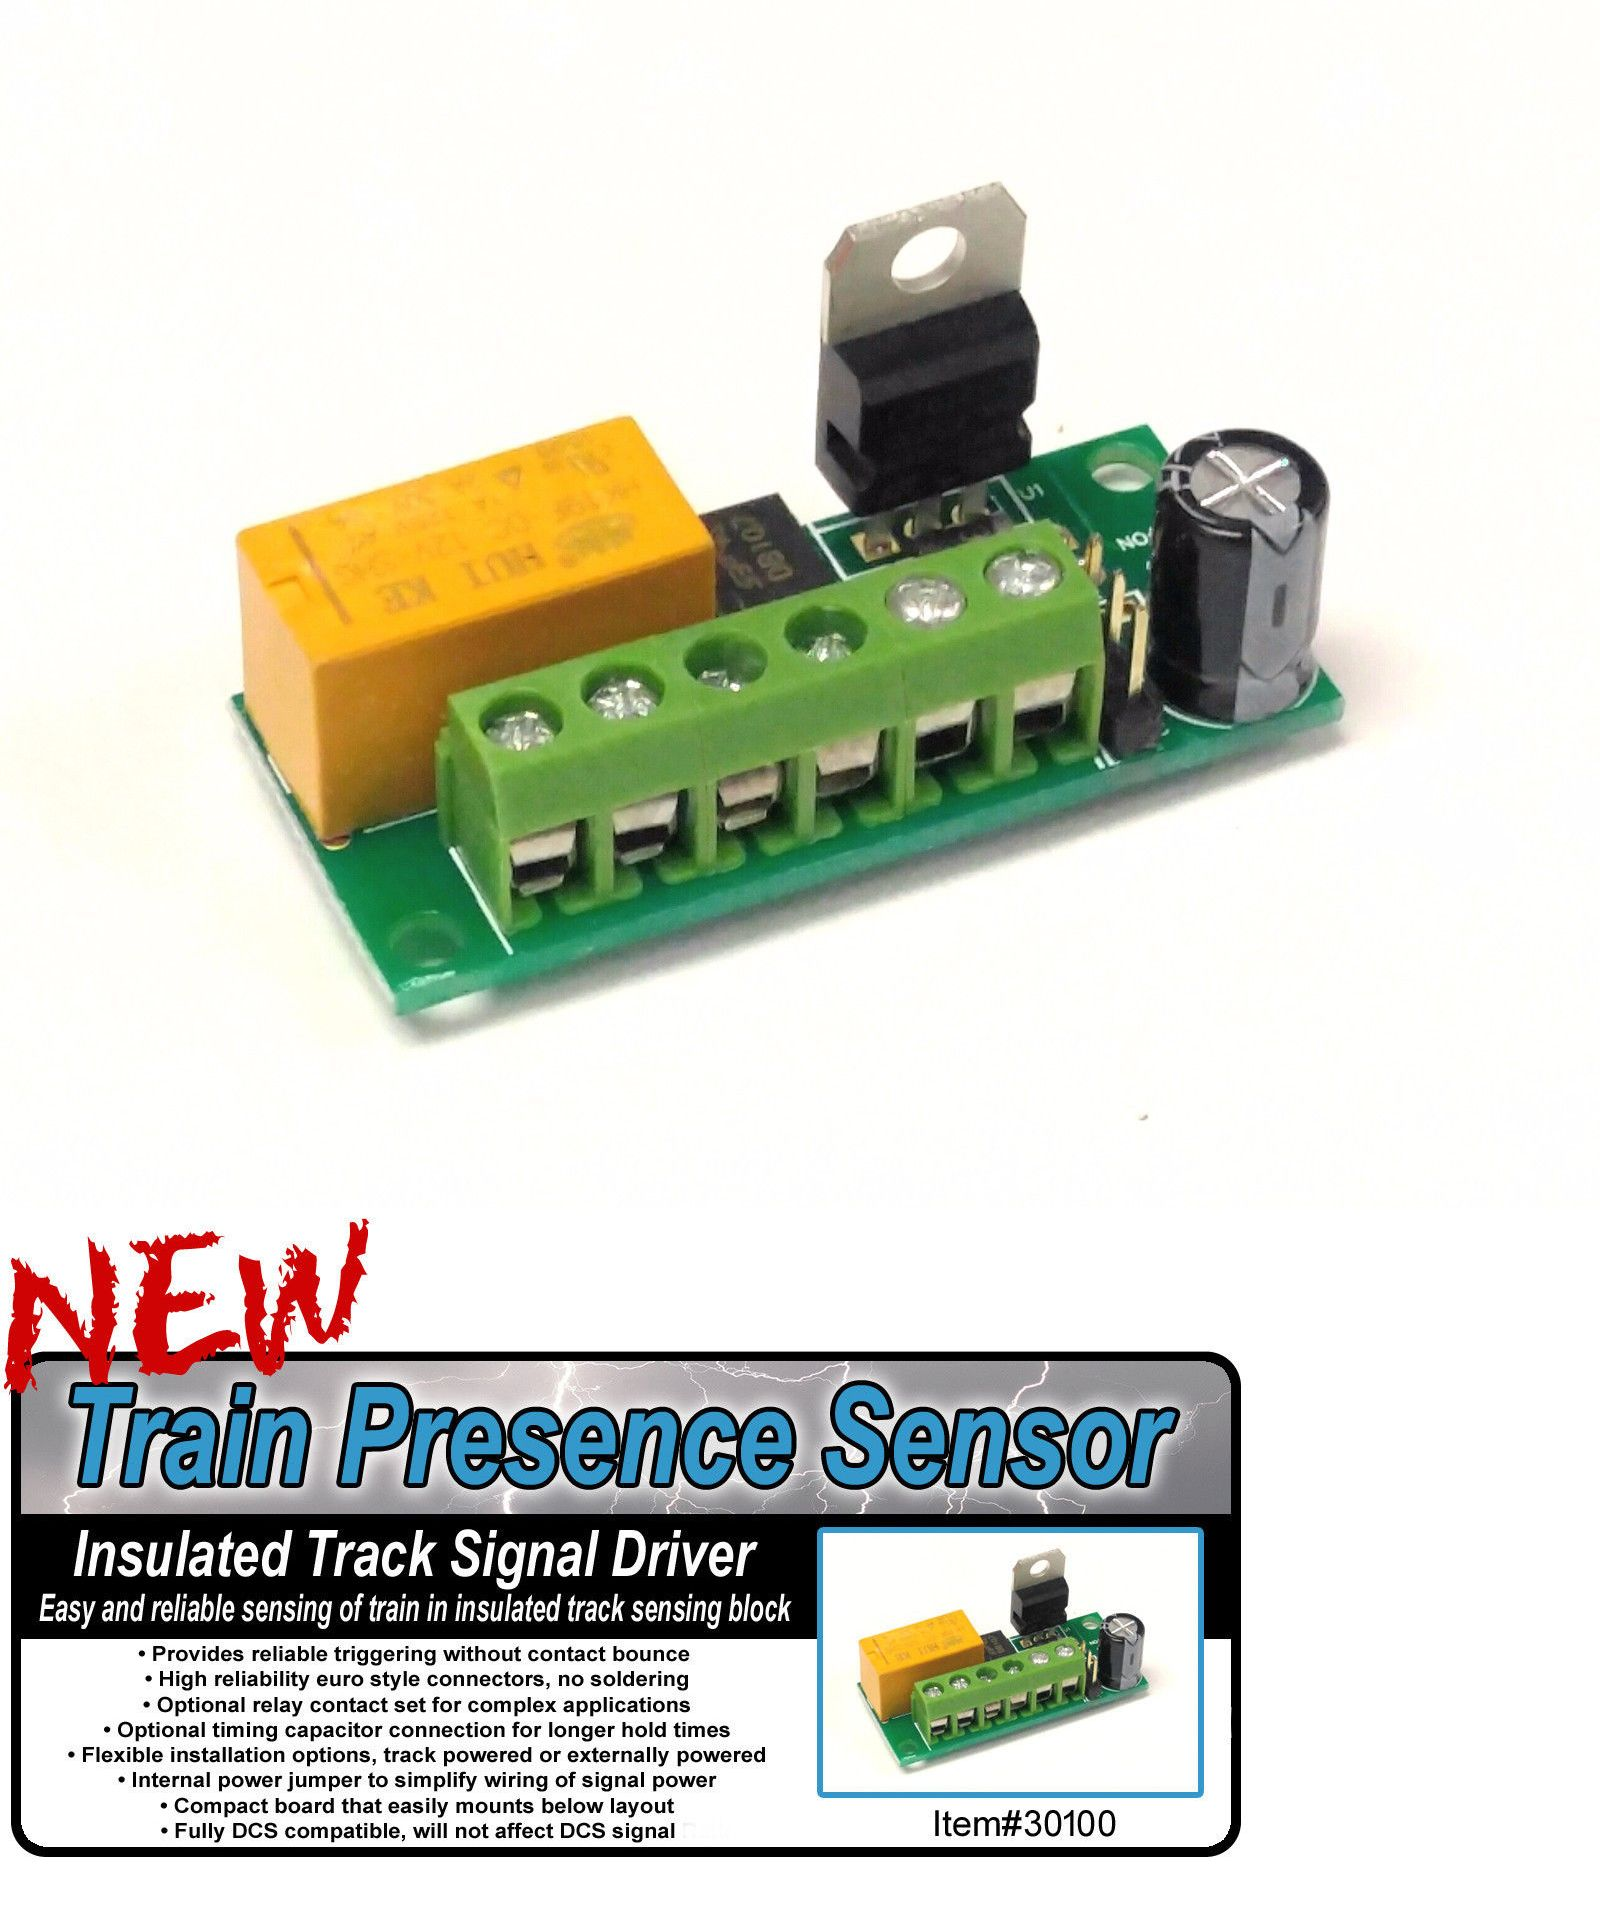 hight resolution of parts and spares 180251 30100 train presence sensor for insulated track o gauge buy it now only 29 99 on ebay parts spares train presence